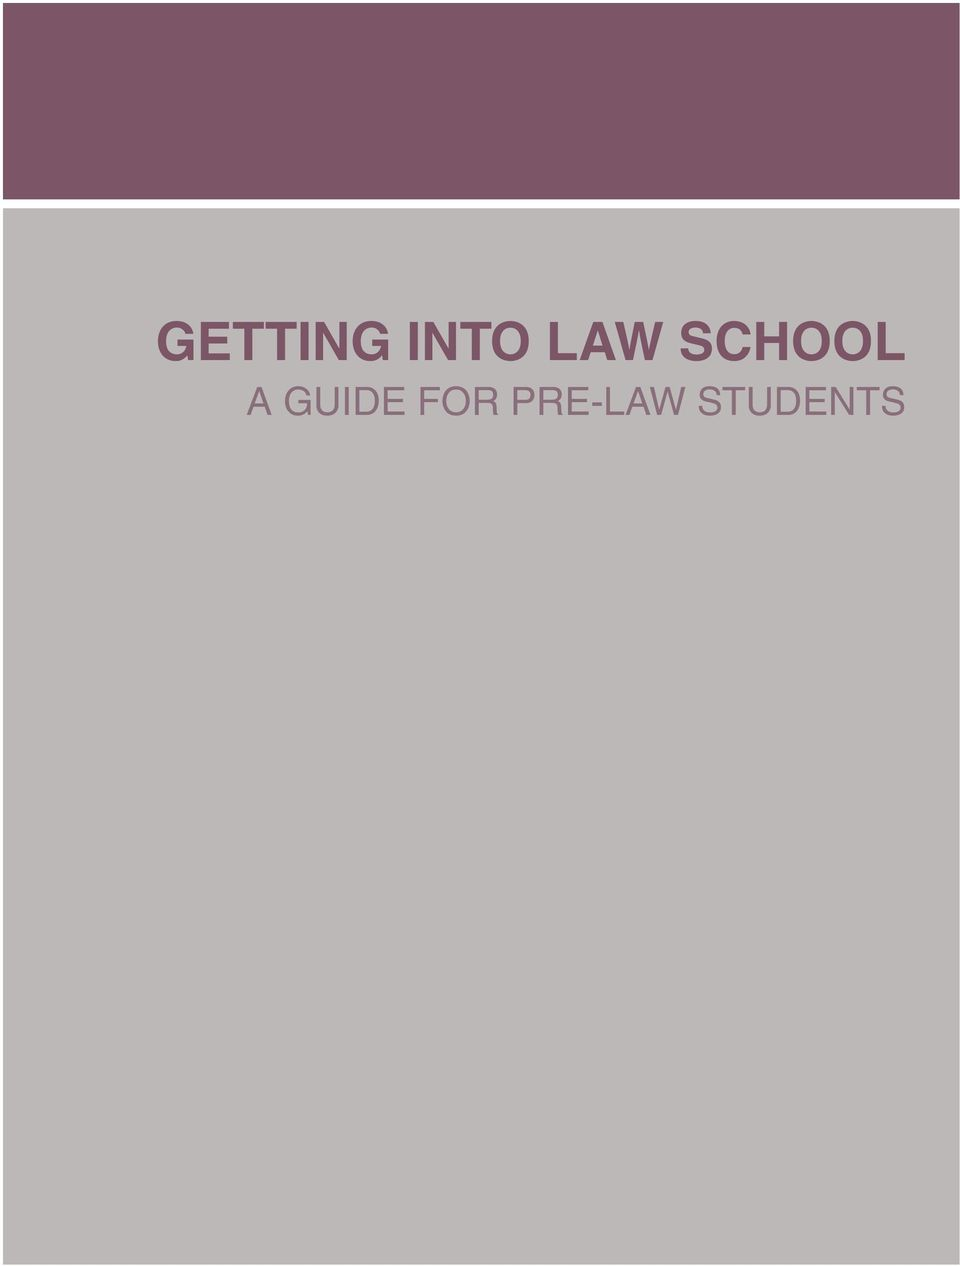 Getting Into Law School. A guide for pre-law students - PDF